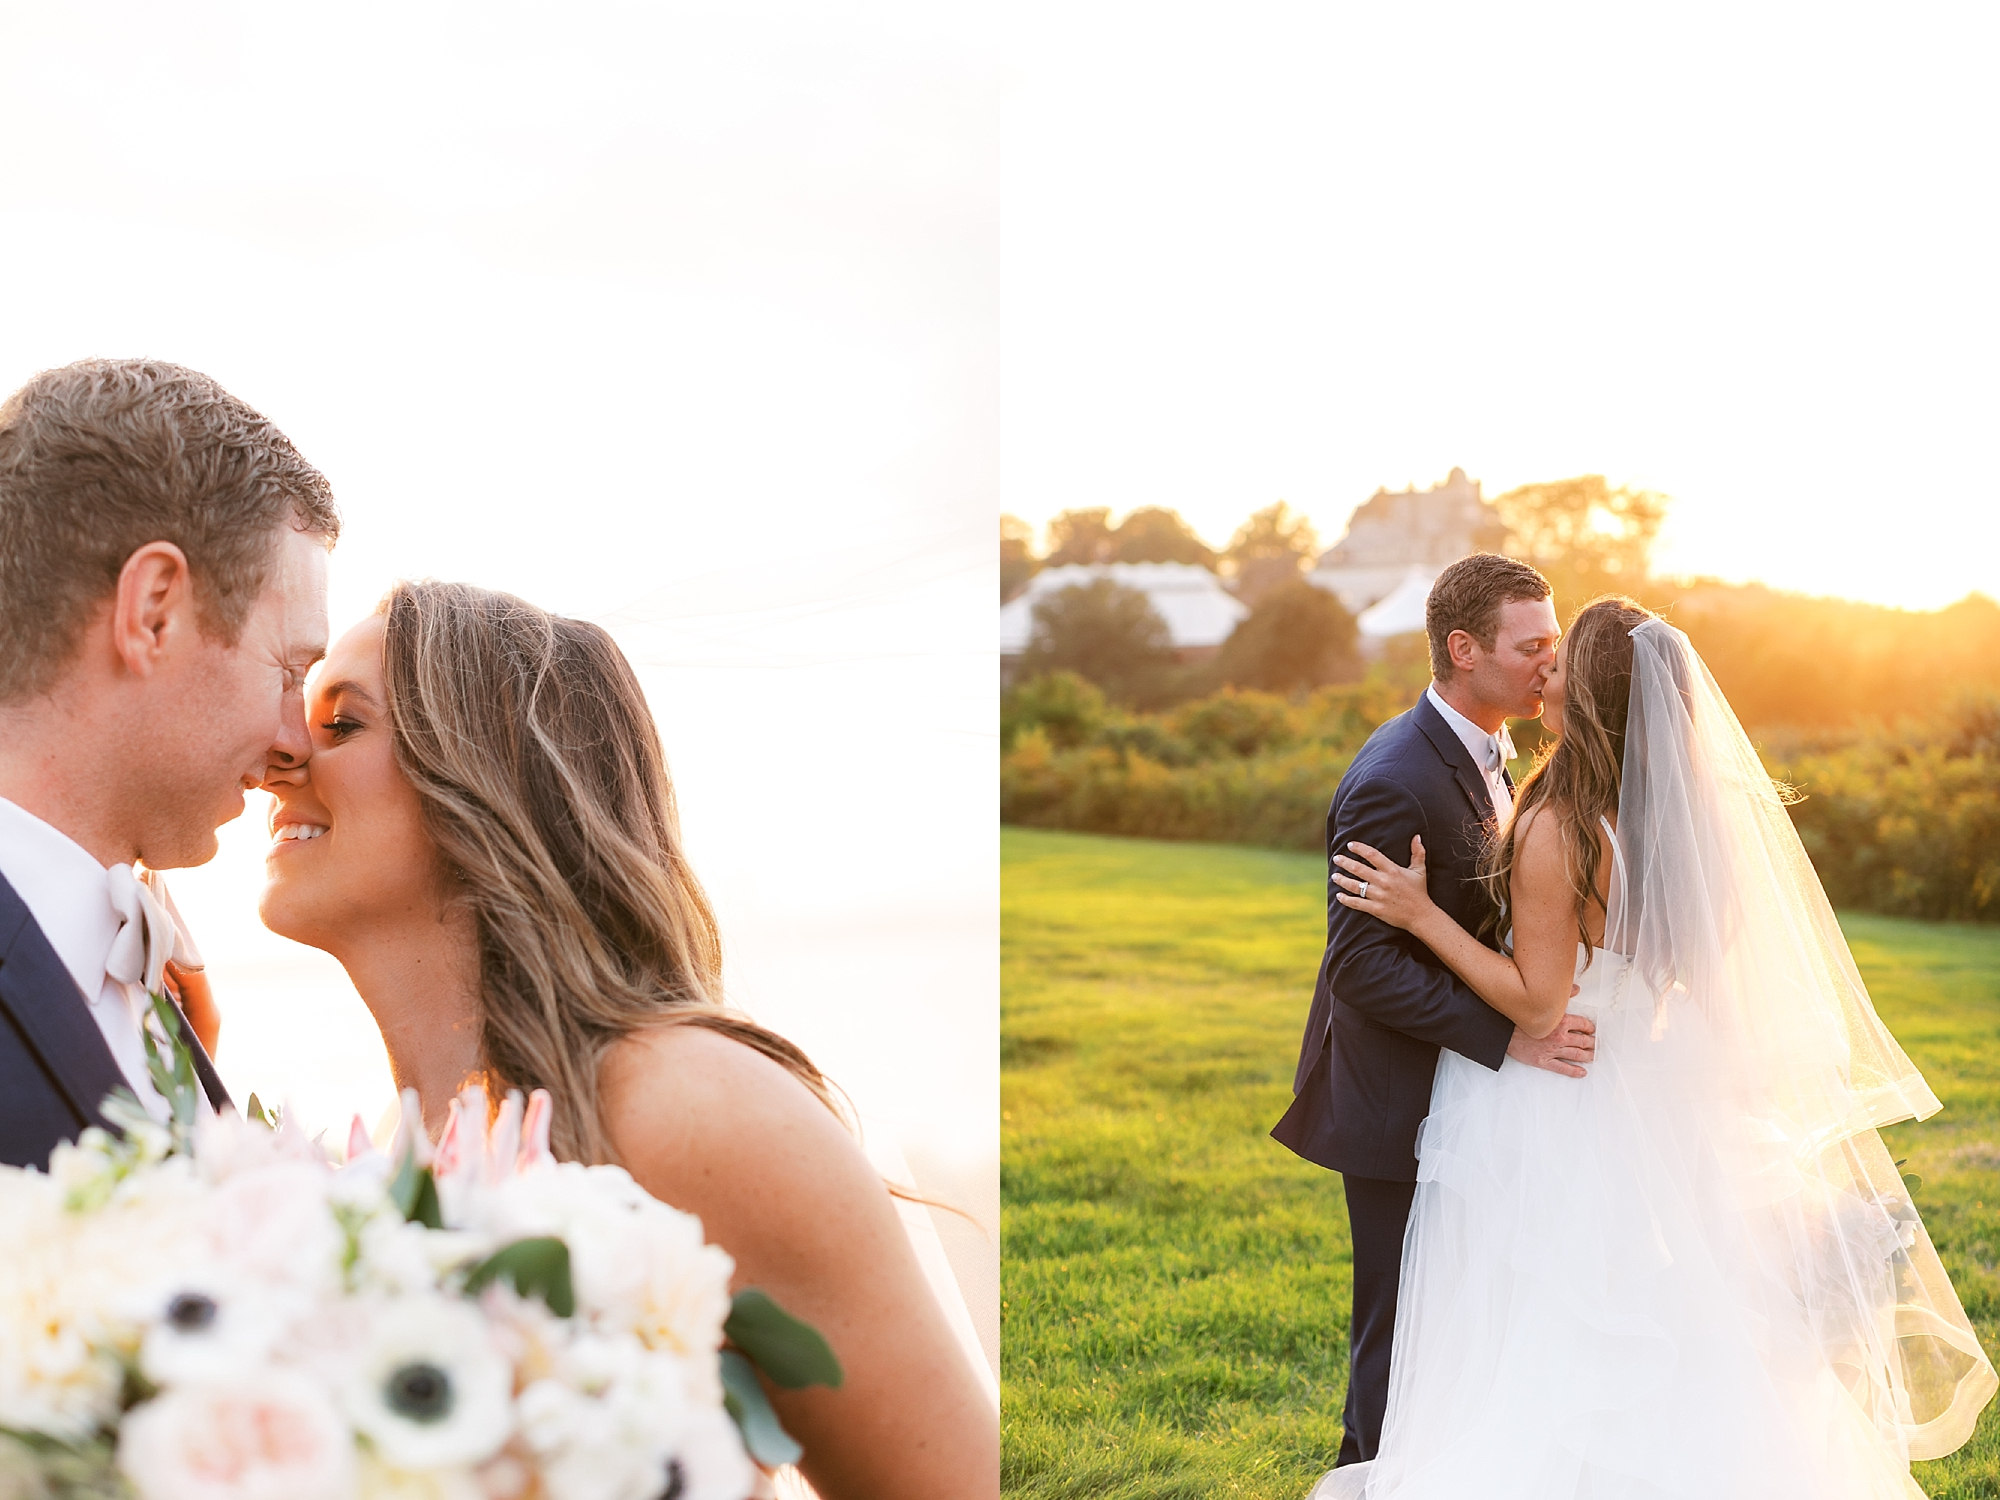 Coastal and Authentic Film Wedding Photography in Newport Rhode Island by Magdalena Studios 0080